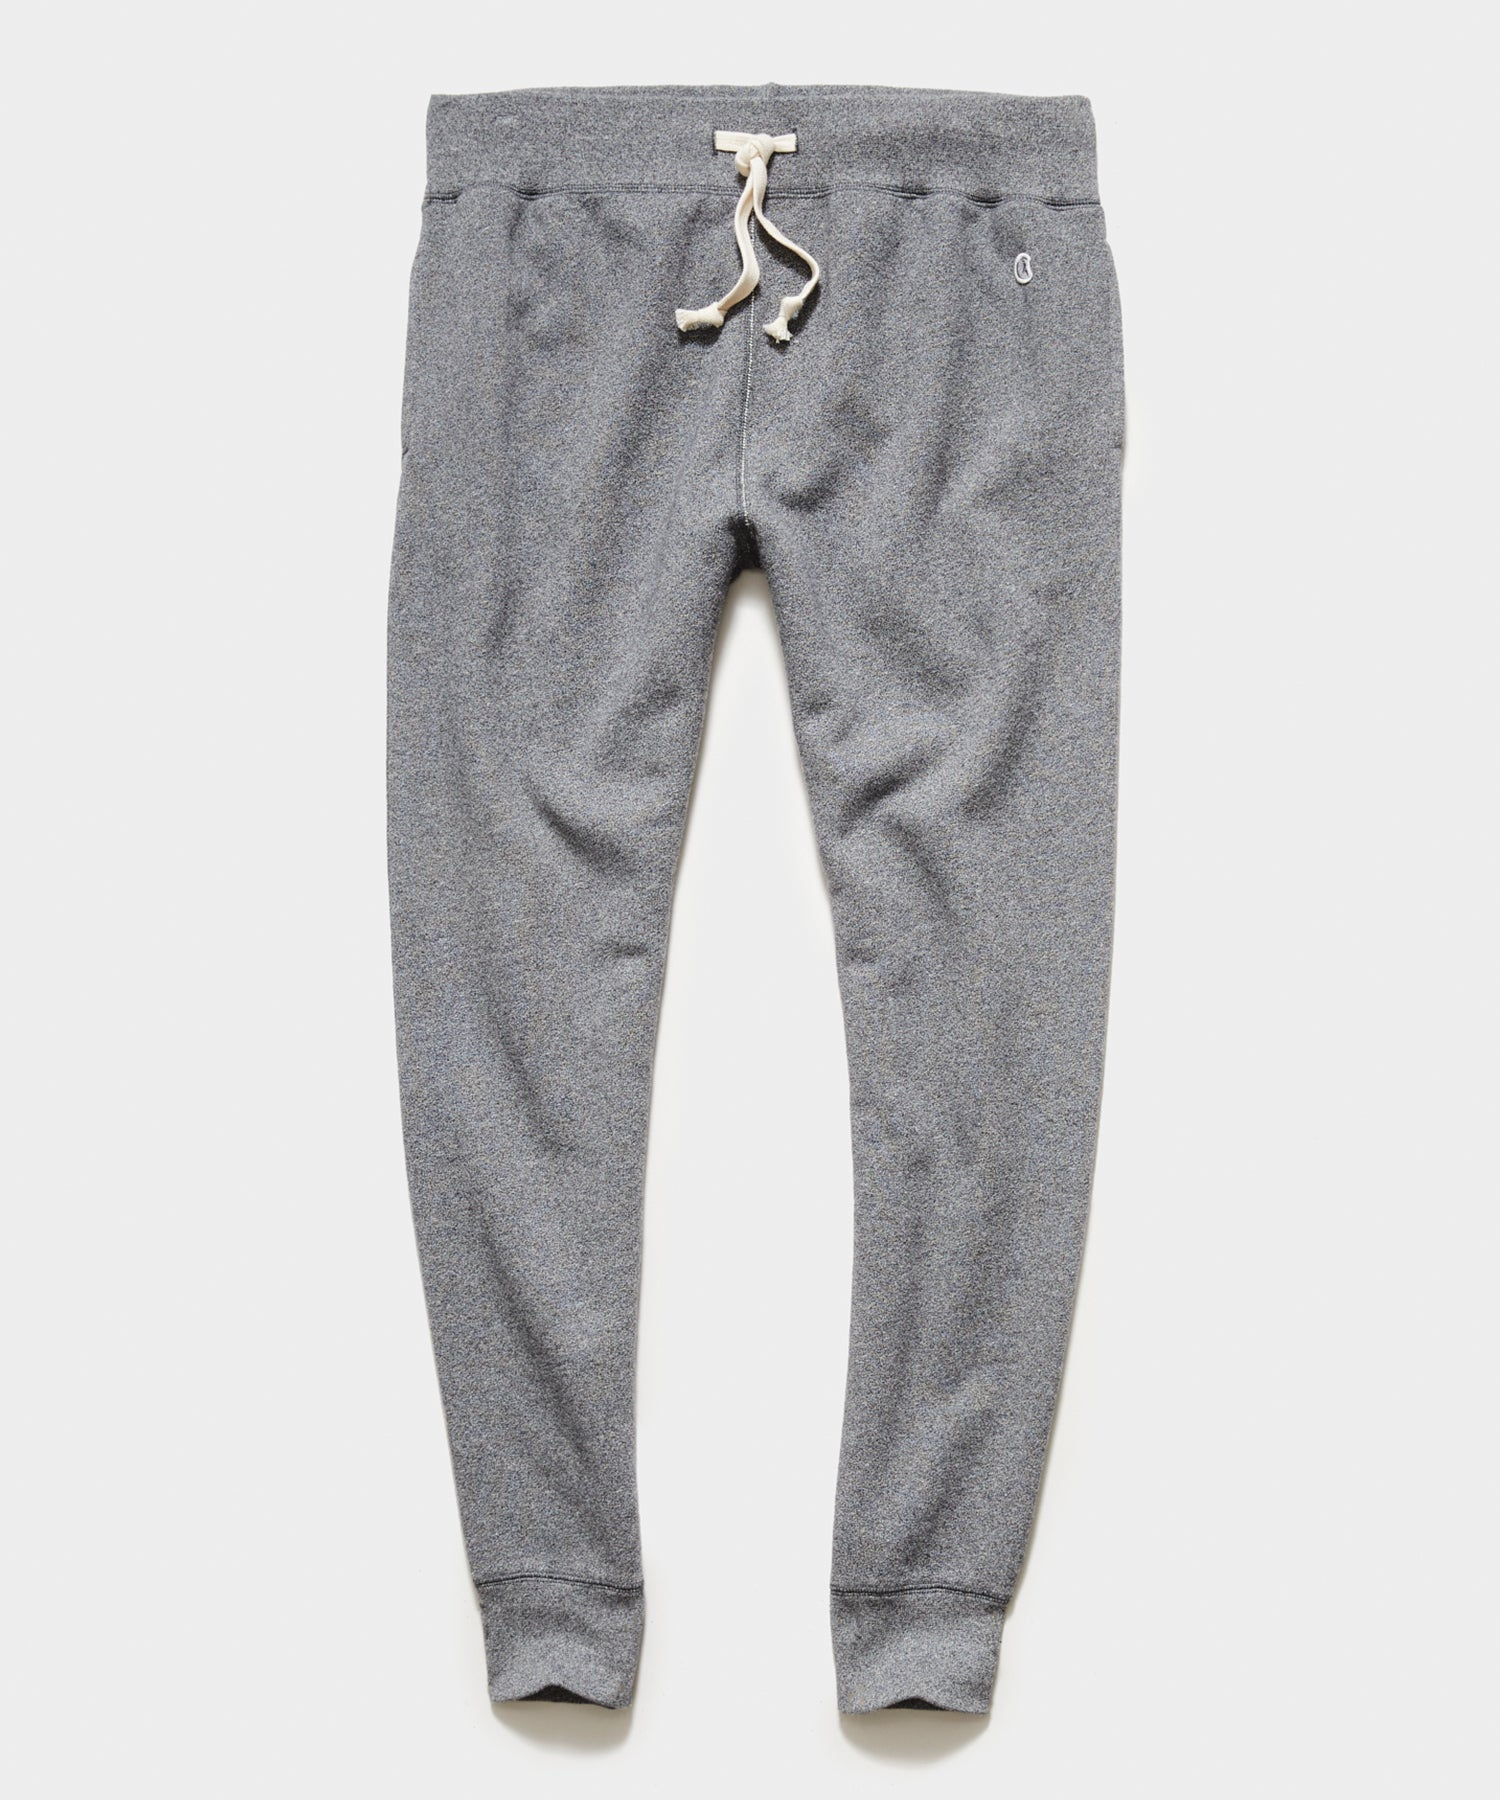 Midweight Slim Jogger Sweatpant in Salt and Pepper